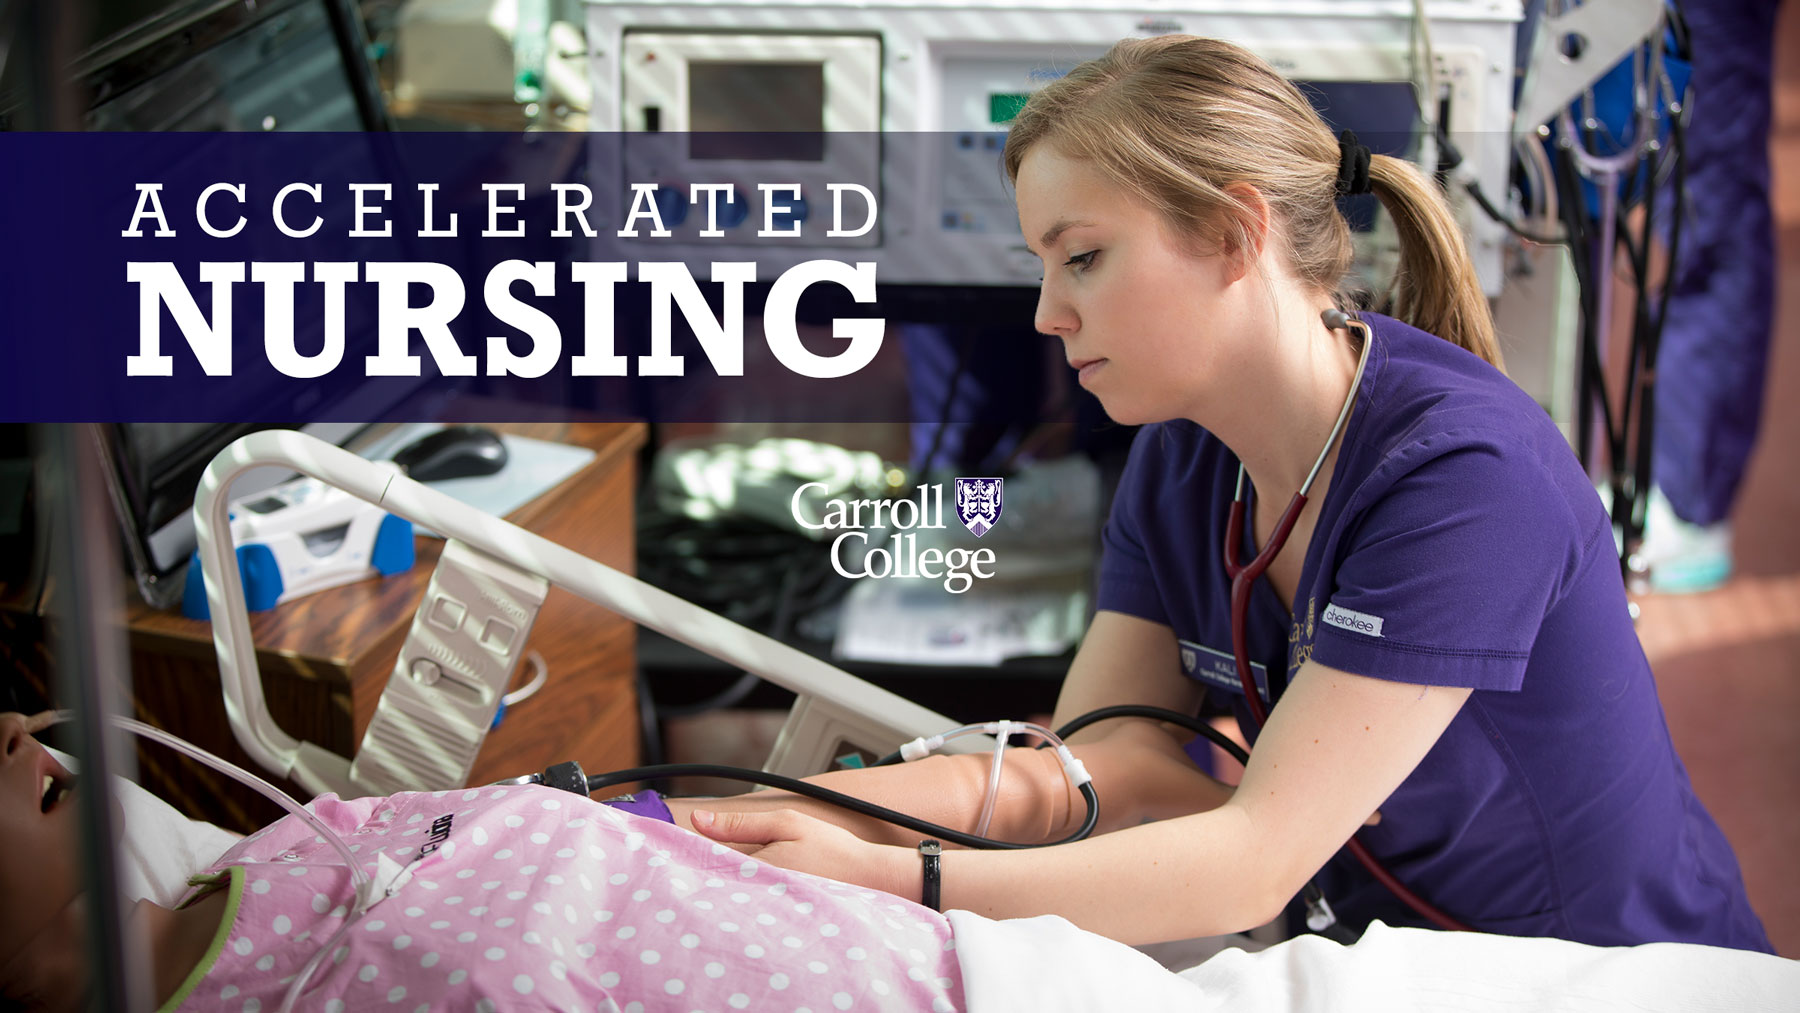 Accelerated Nursing at Carroll College